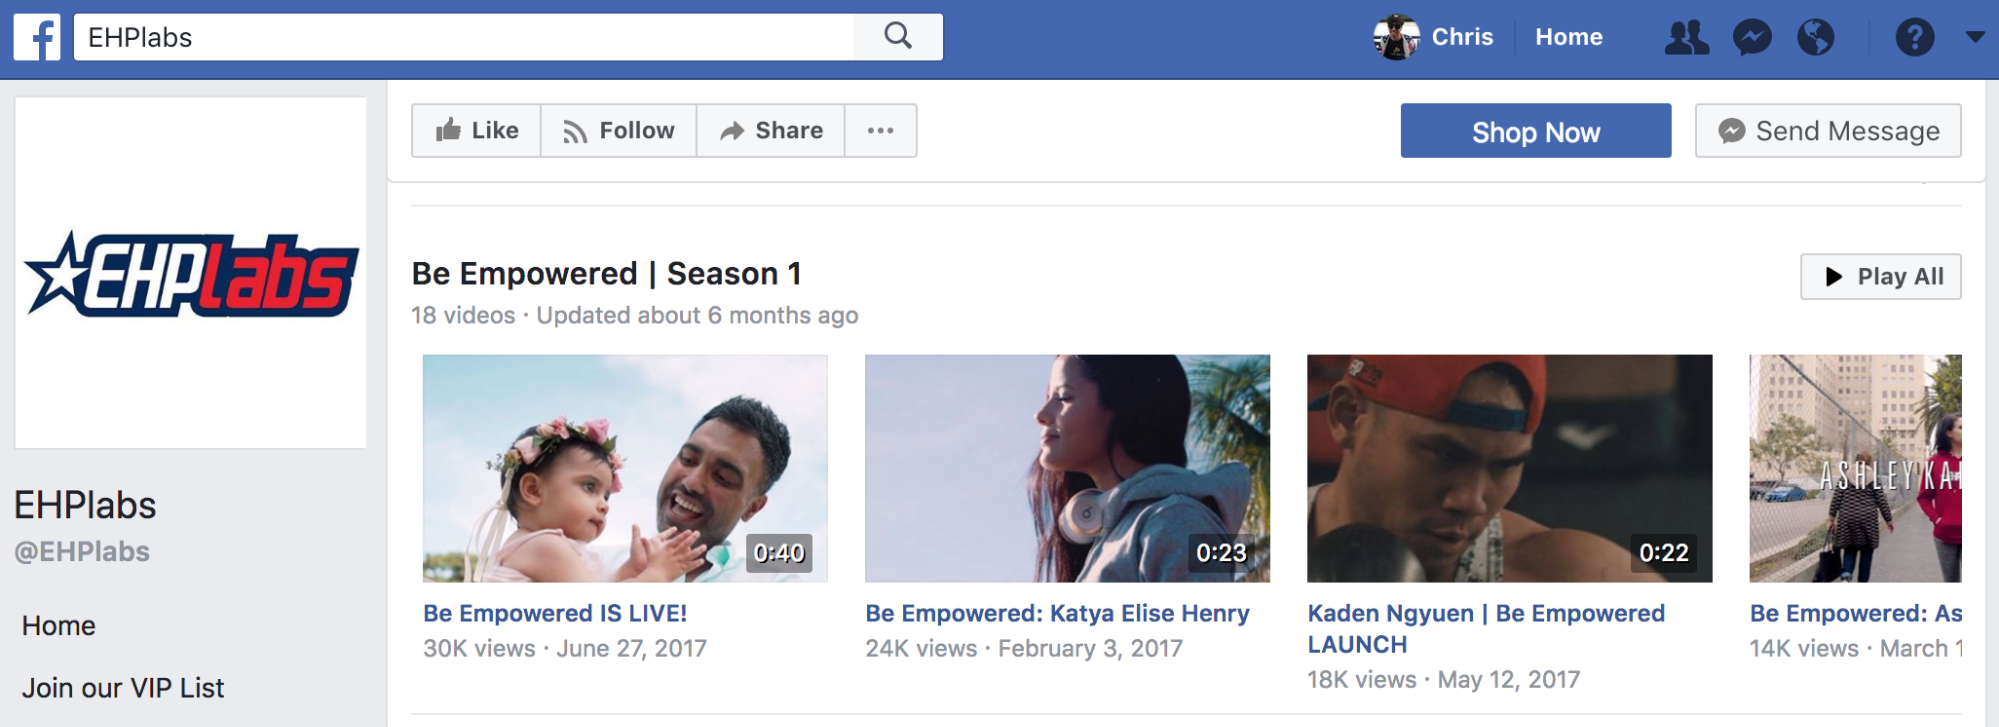 Screenshot showing Facebook videos by EHPlabs